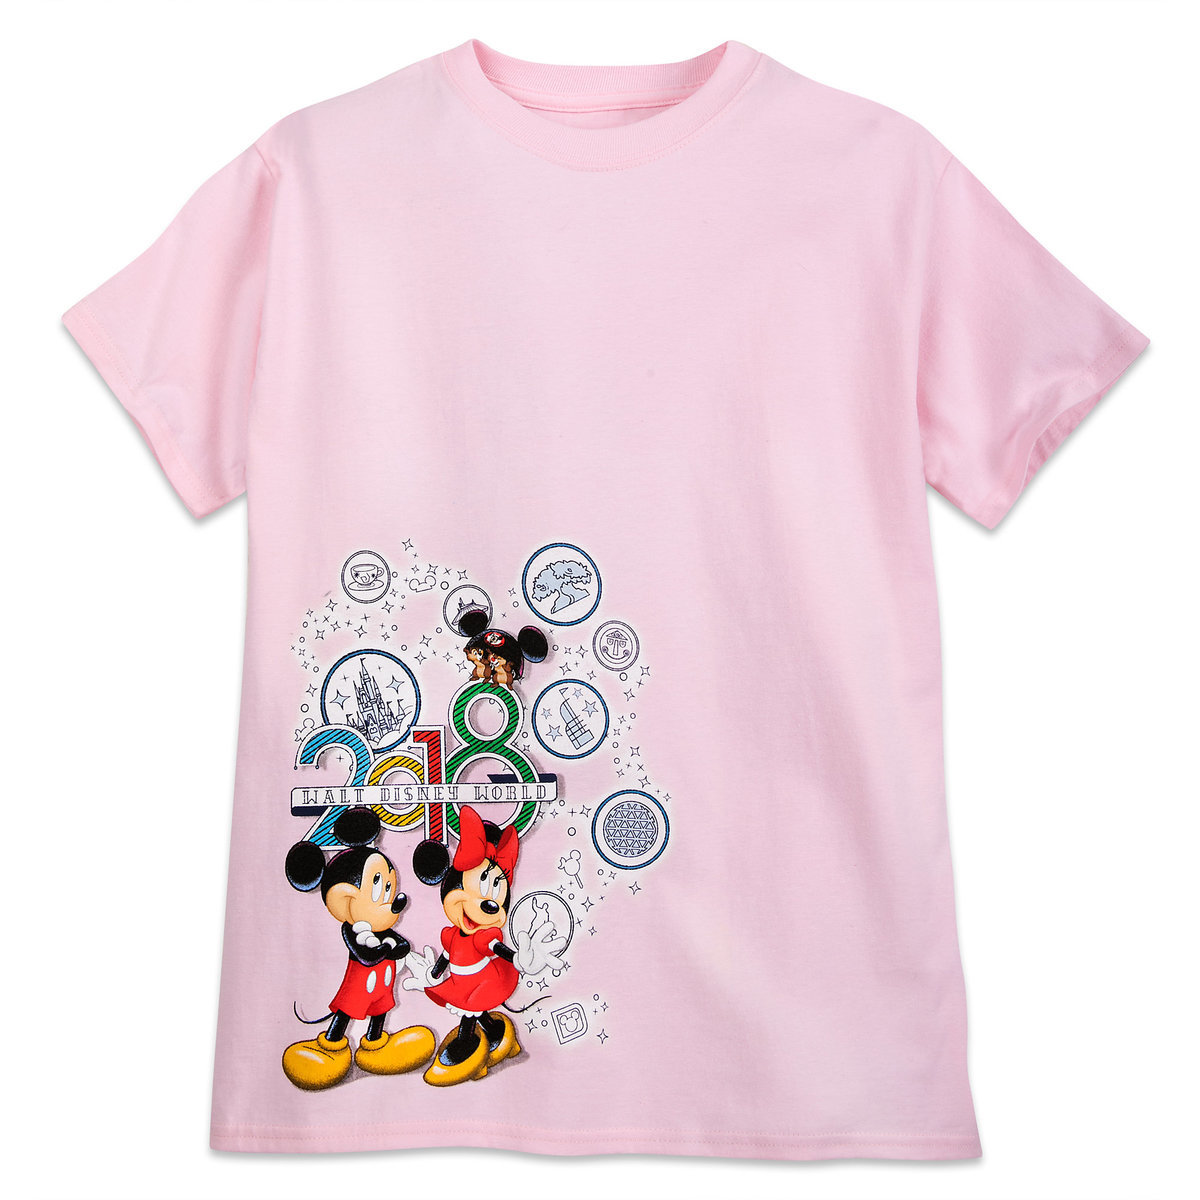 4fd4ff232 Product Image of Mickey Mouse and Friends T-Shirt for Kids - Walt Disney  World